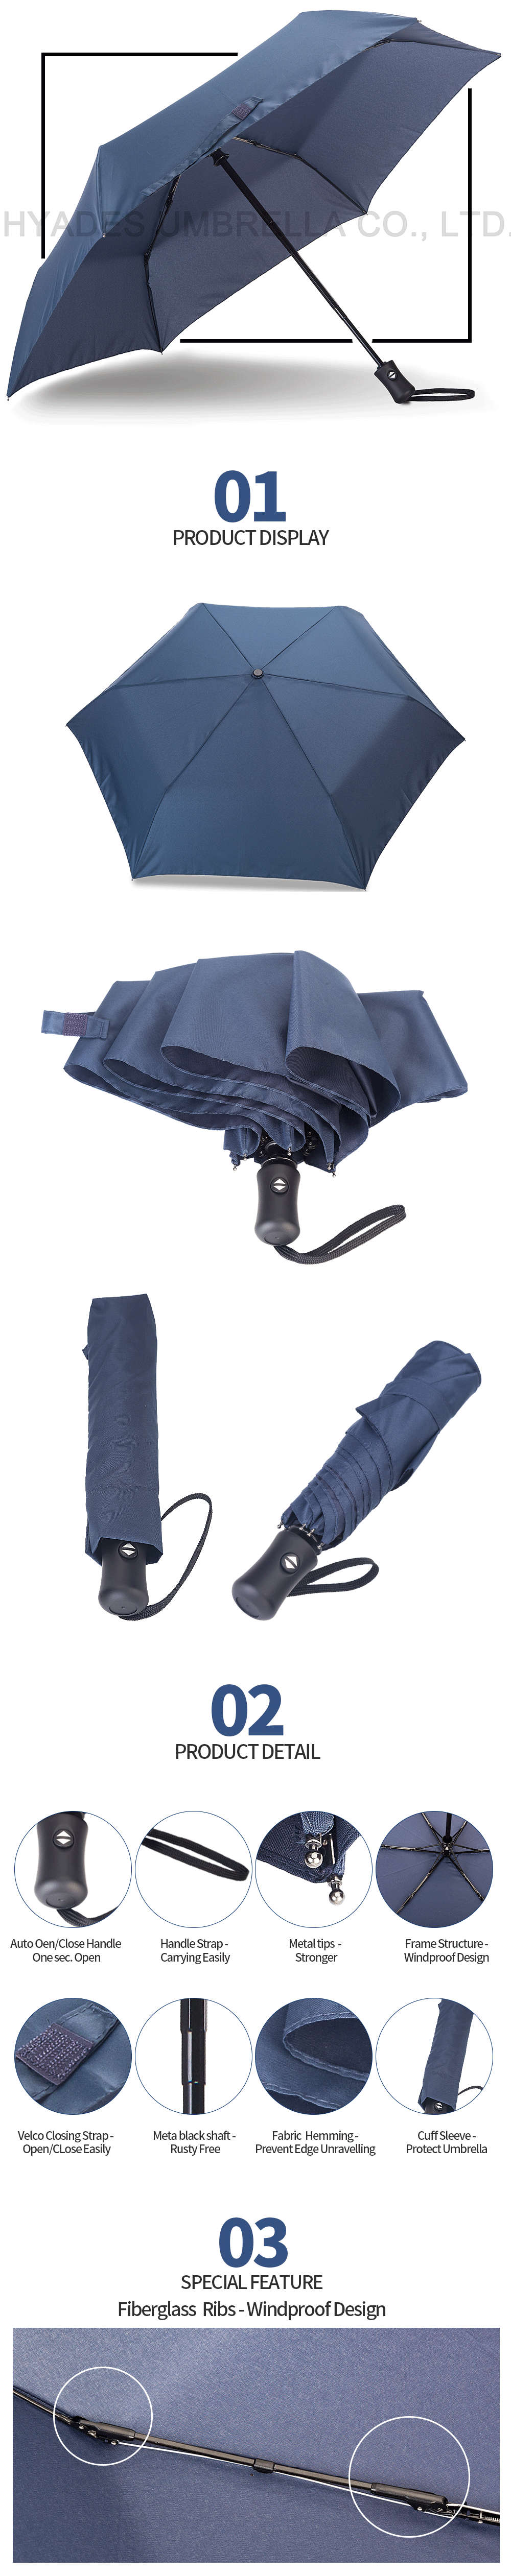 travel folding umbrella